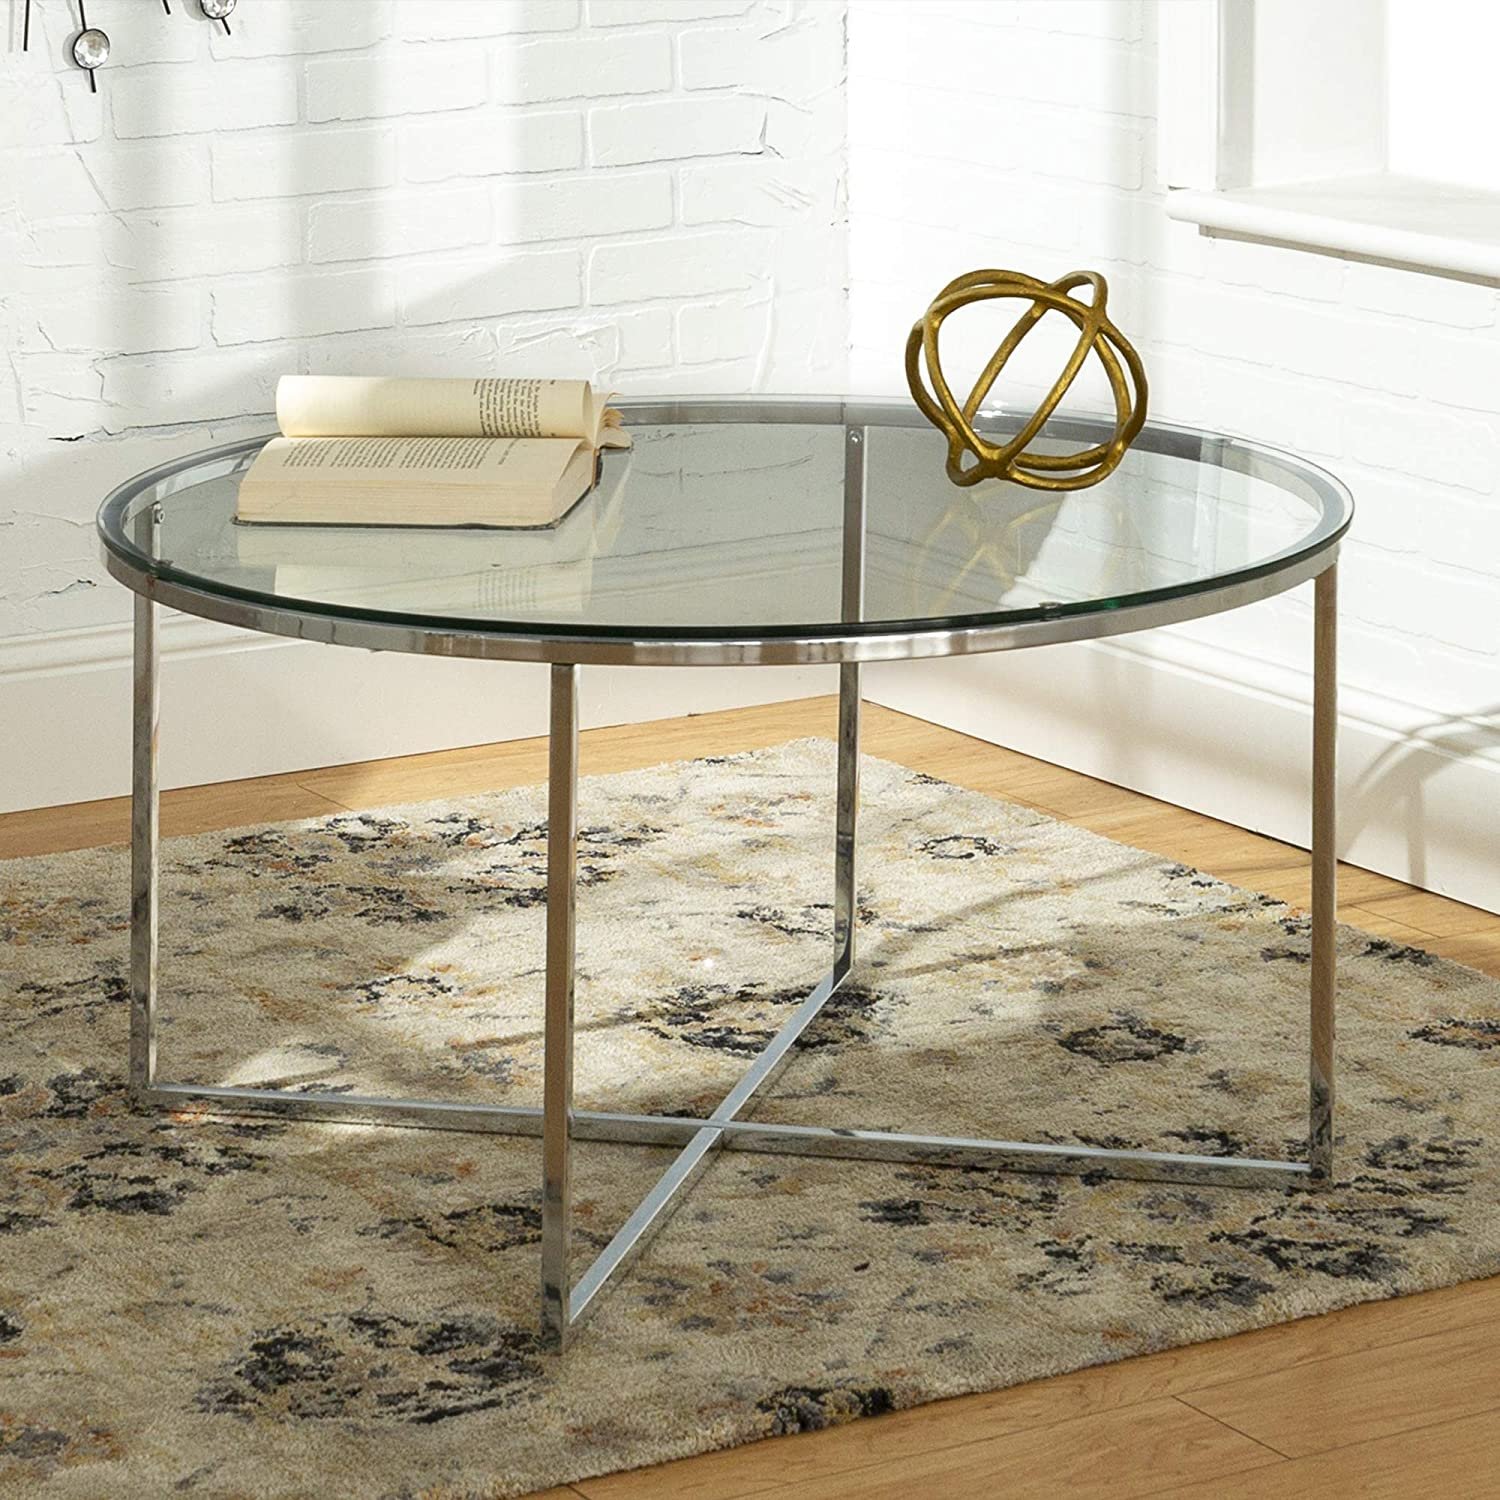 Walker Edison Modern Round Coffee Accent Table Living Room, Glass/Chrome